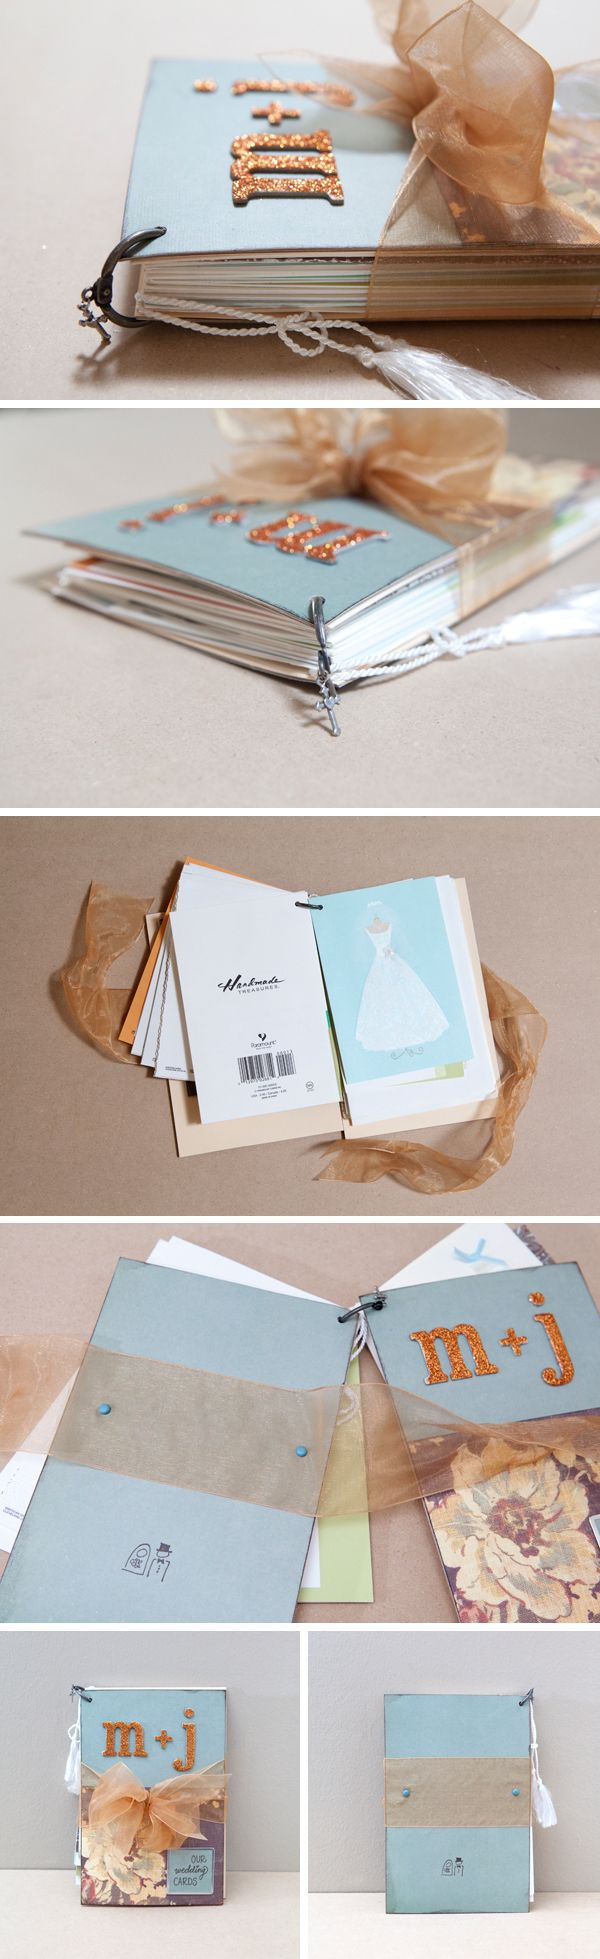 A cute way to save all those wedding cards!